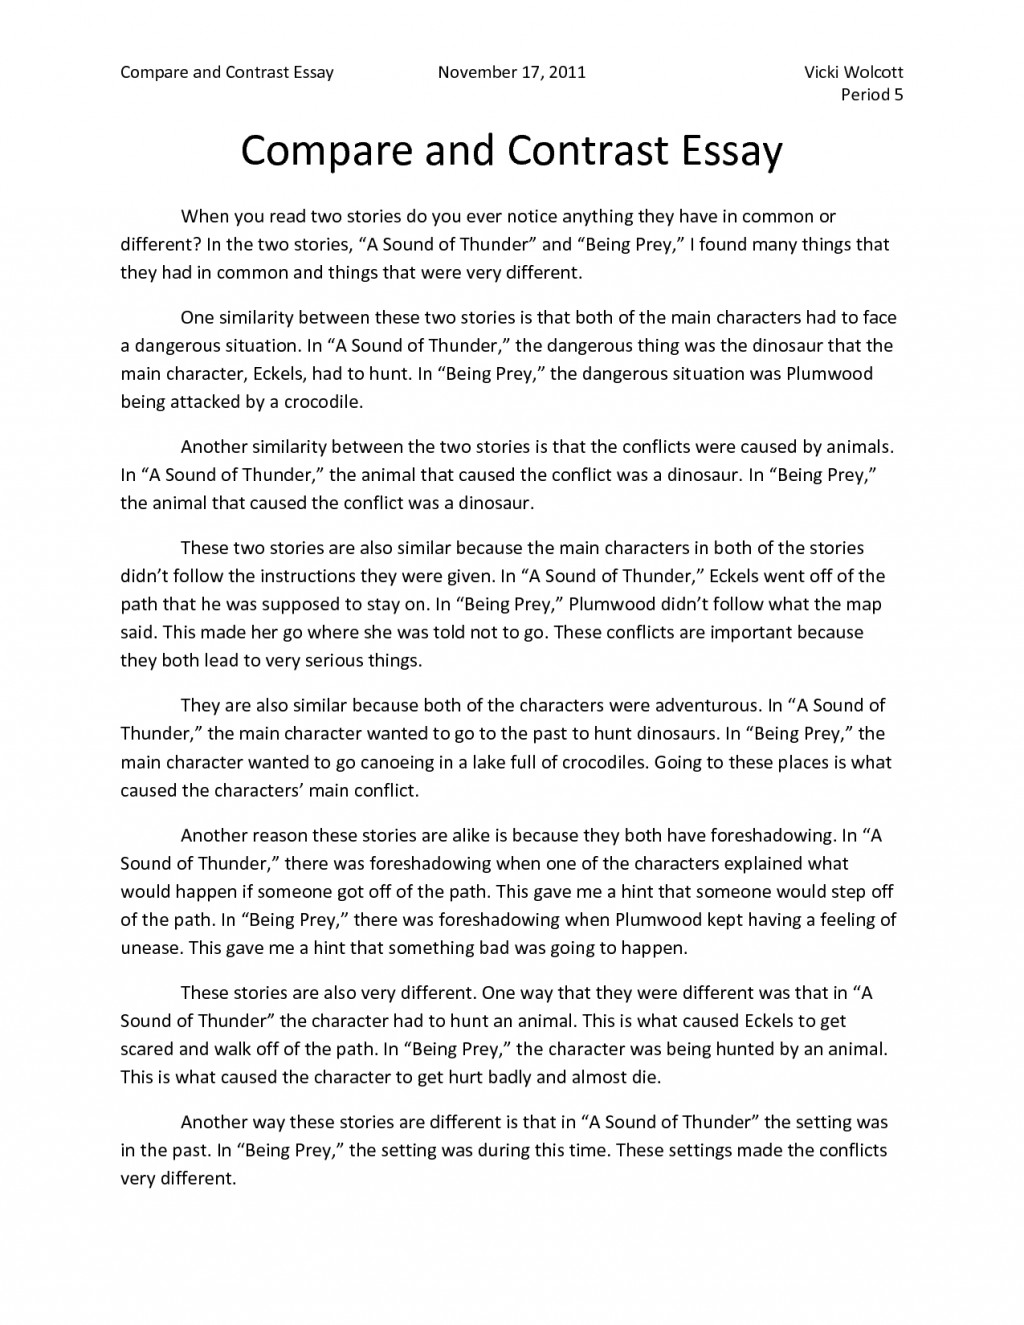 003 Perfect Essays Compare And Contrast Essay Introduction Example How To Write College Striking Examples Elementary Fourth Grade For Students Large